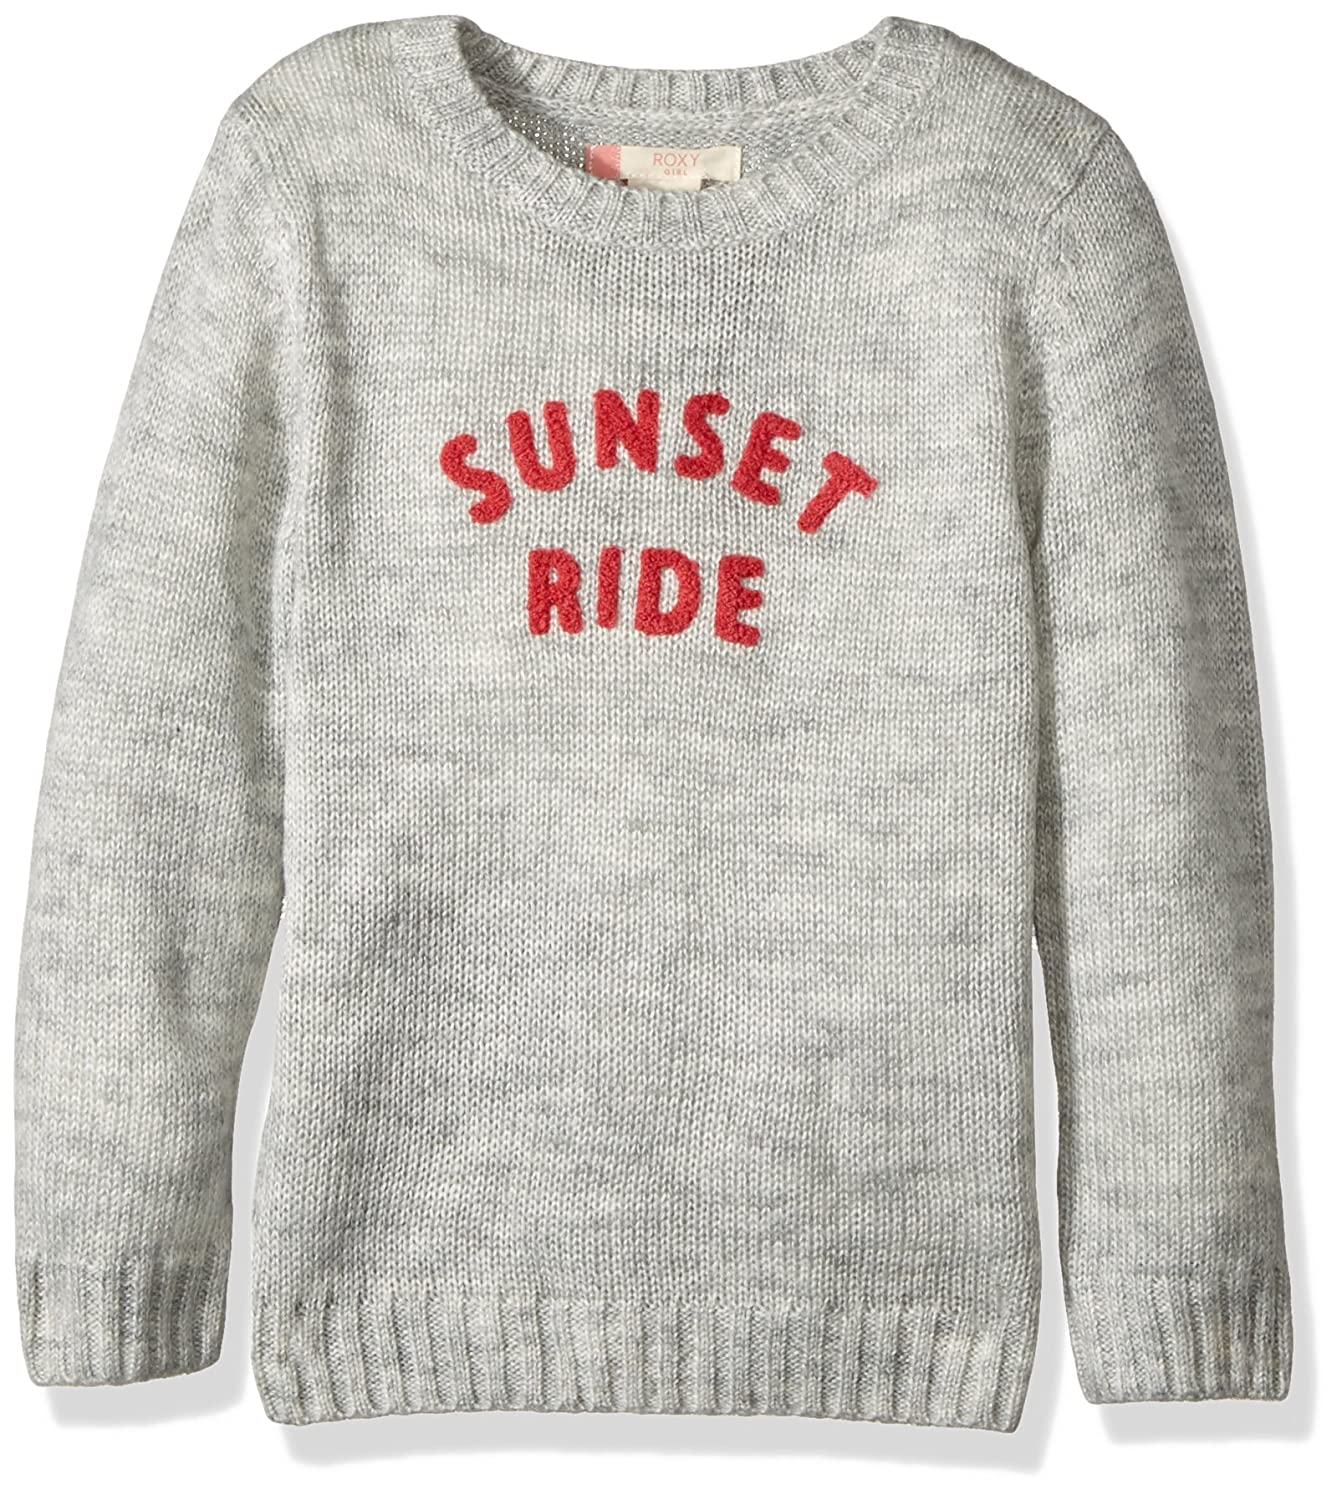 Roxy girls Little Girls Daisy Tales Sweater Roxy Children' s Apparel ERLSW03017-SGRH